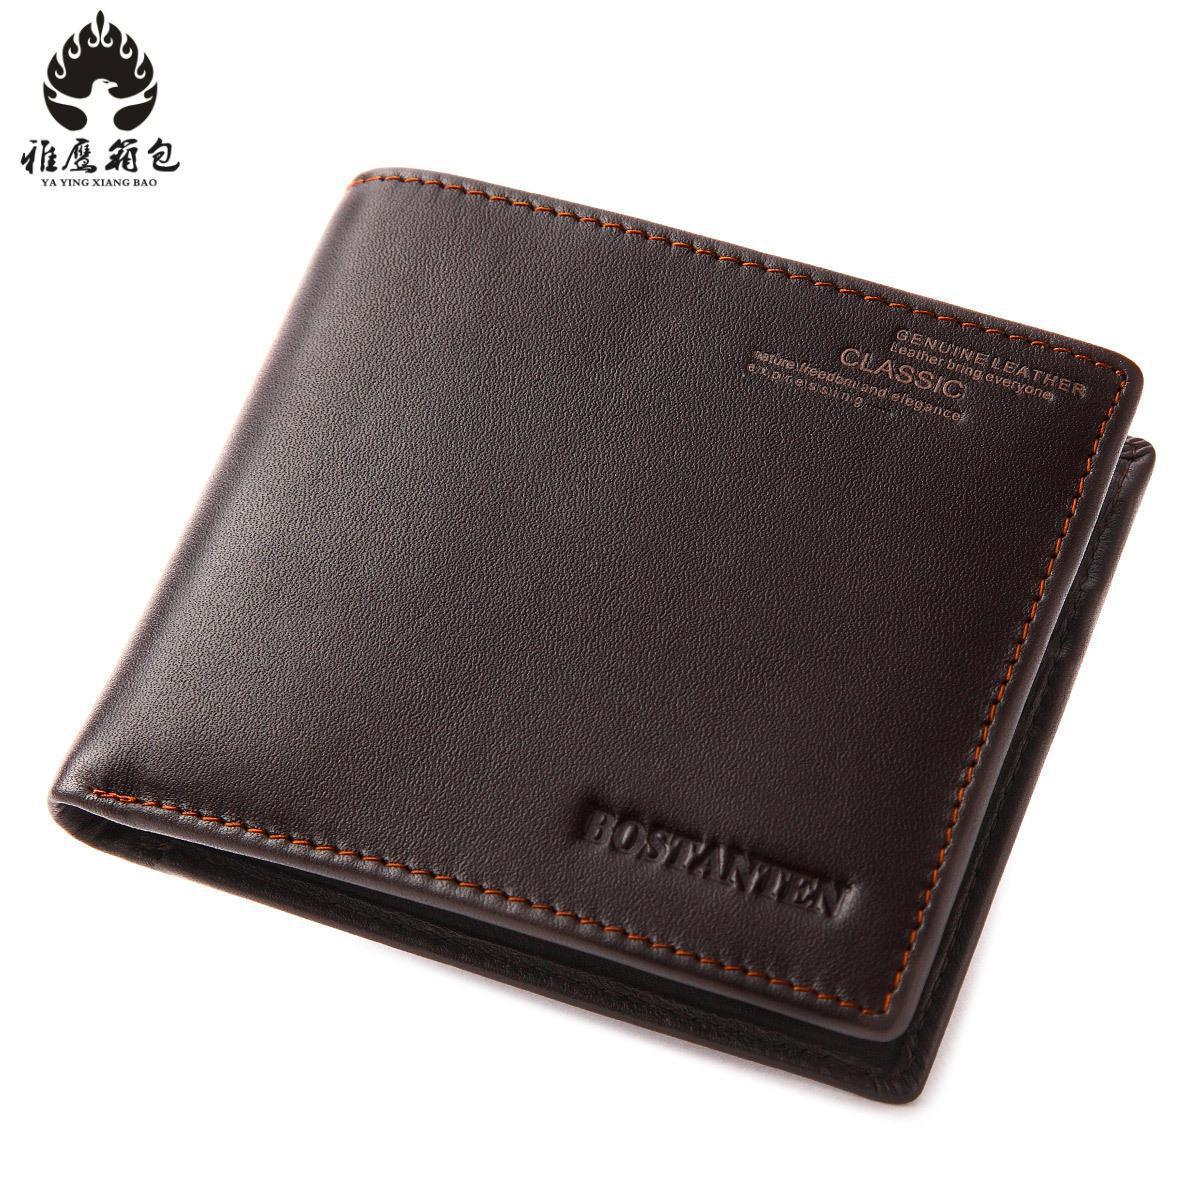 Genuine Leather Men Wallets And Purses Coin Purse Man Famous Small Short Portomonee Mini Male Purses Card Holder Walet baellerry top pu leather men wallets and purses coin purse man famous small short portomonee mini male purses card holder walet